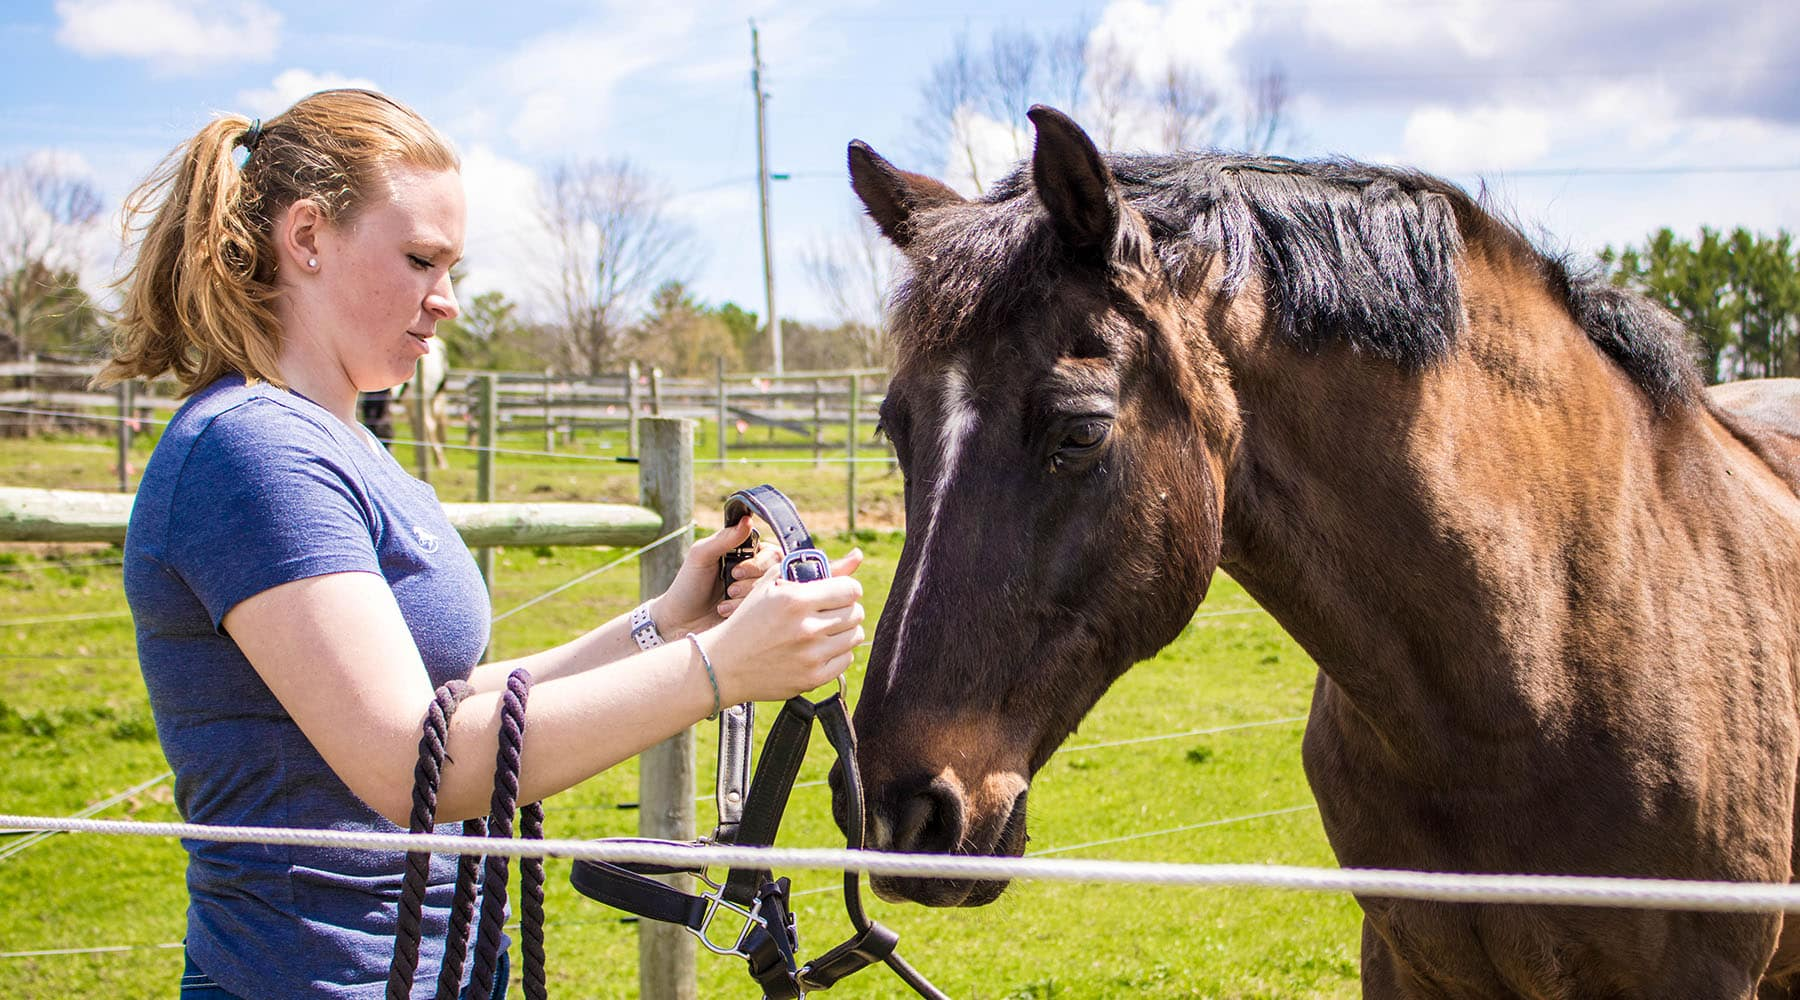 Horse bows his  head for female student can put on his lead, hands on